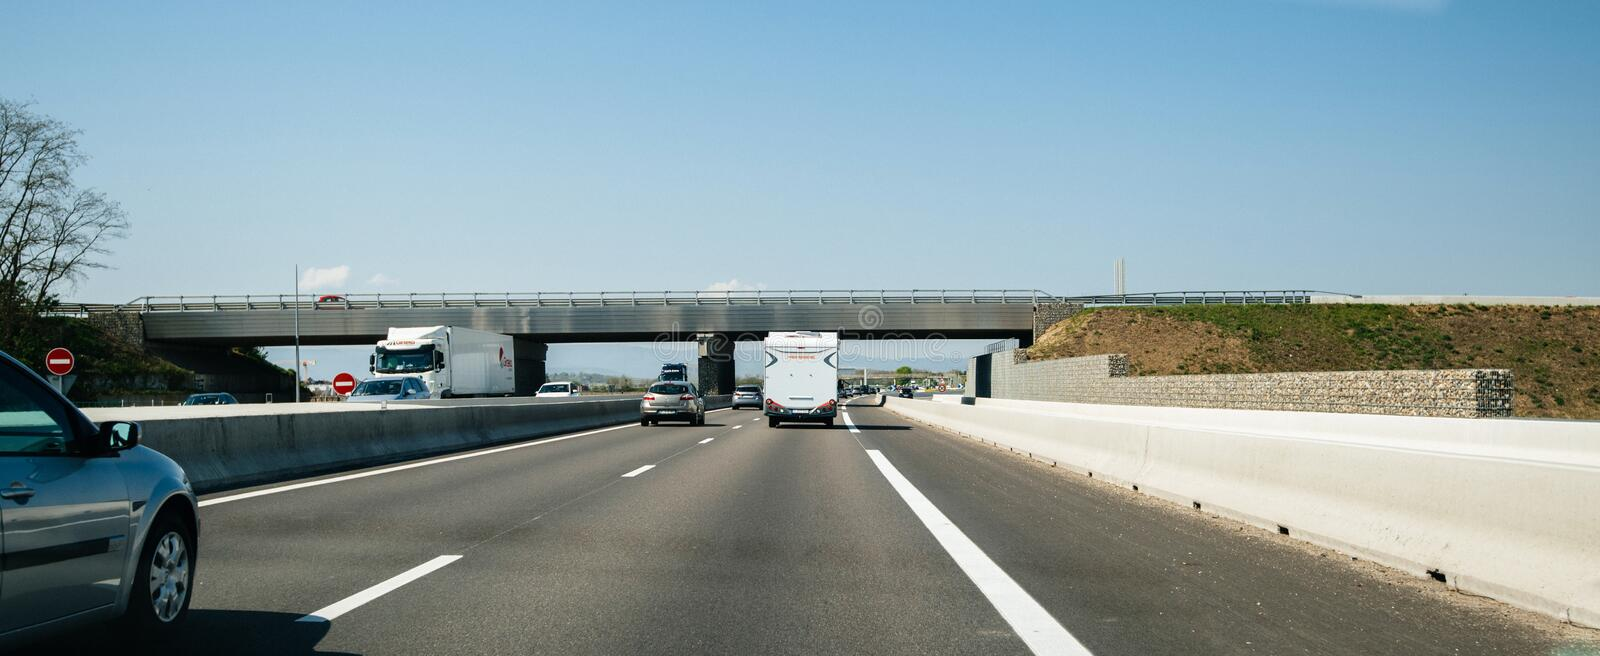 Moderate traffic on French highway with cars royalty free stock photo